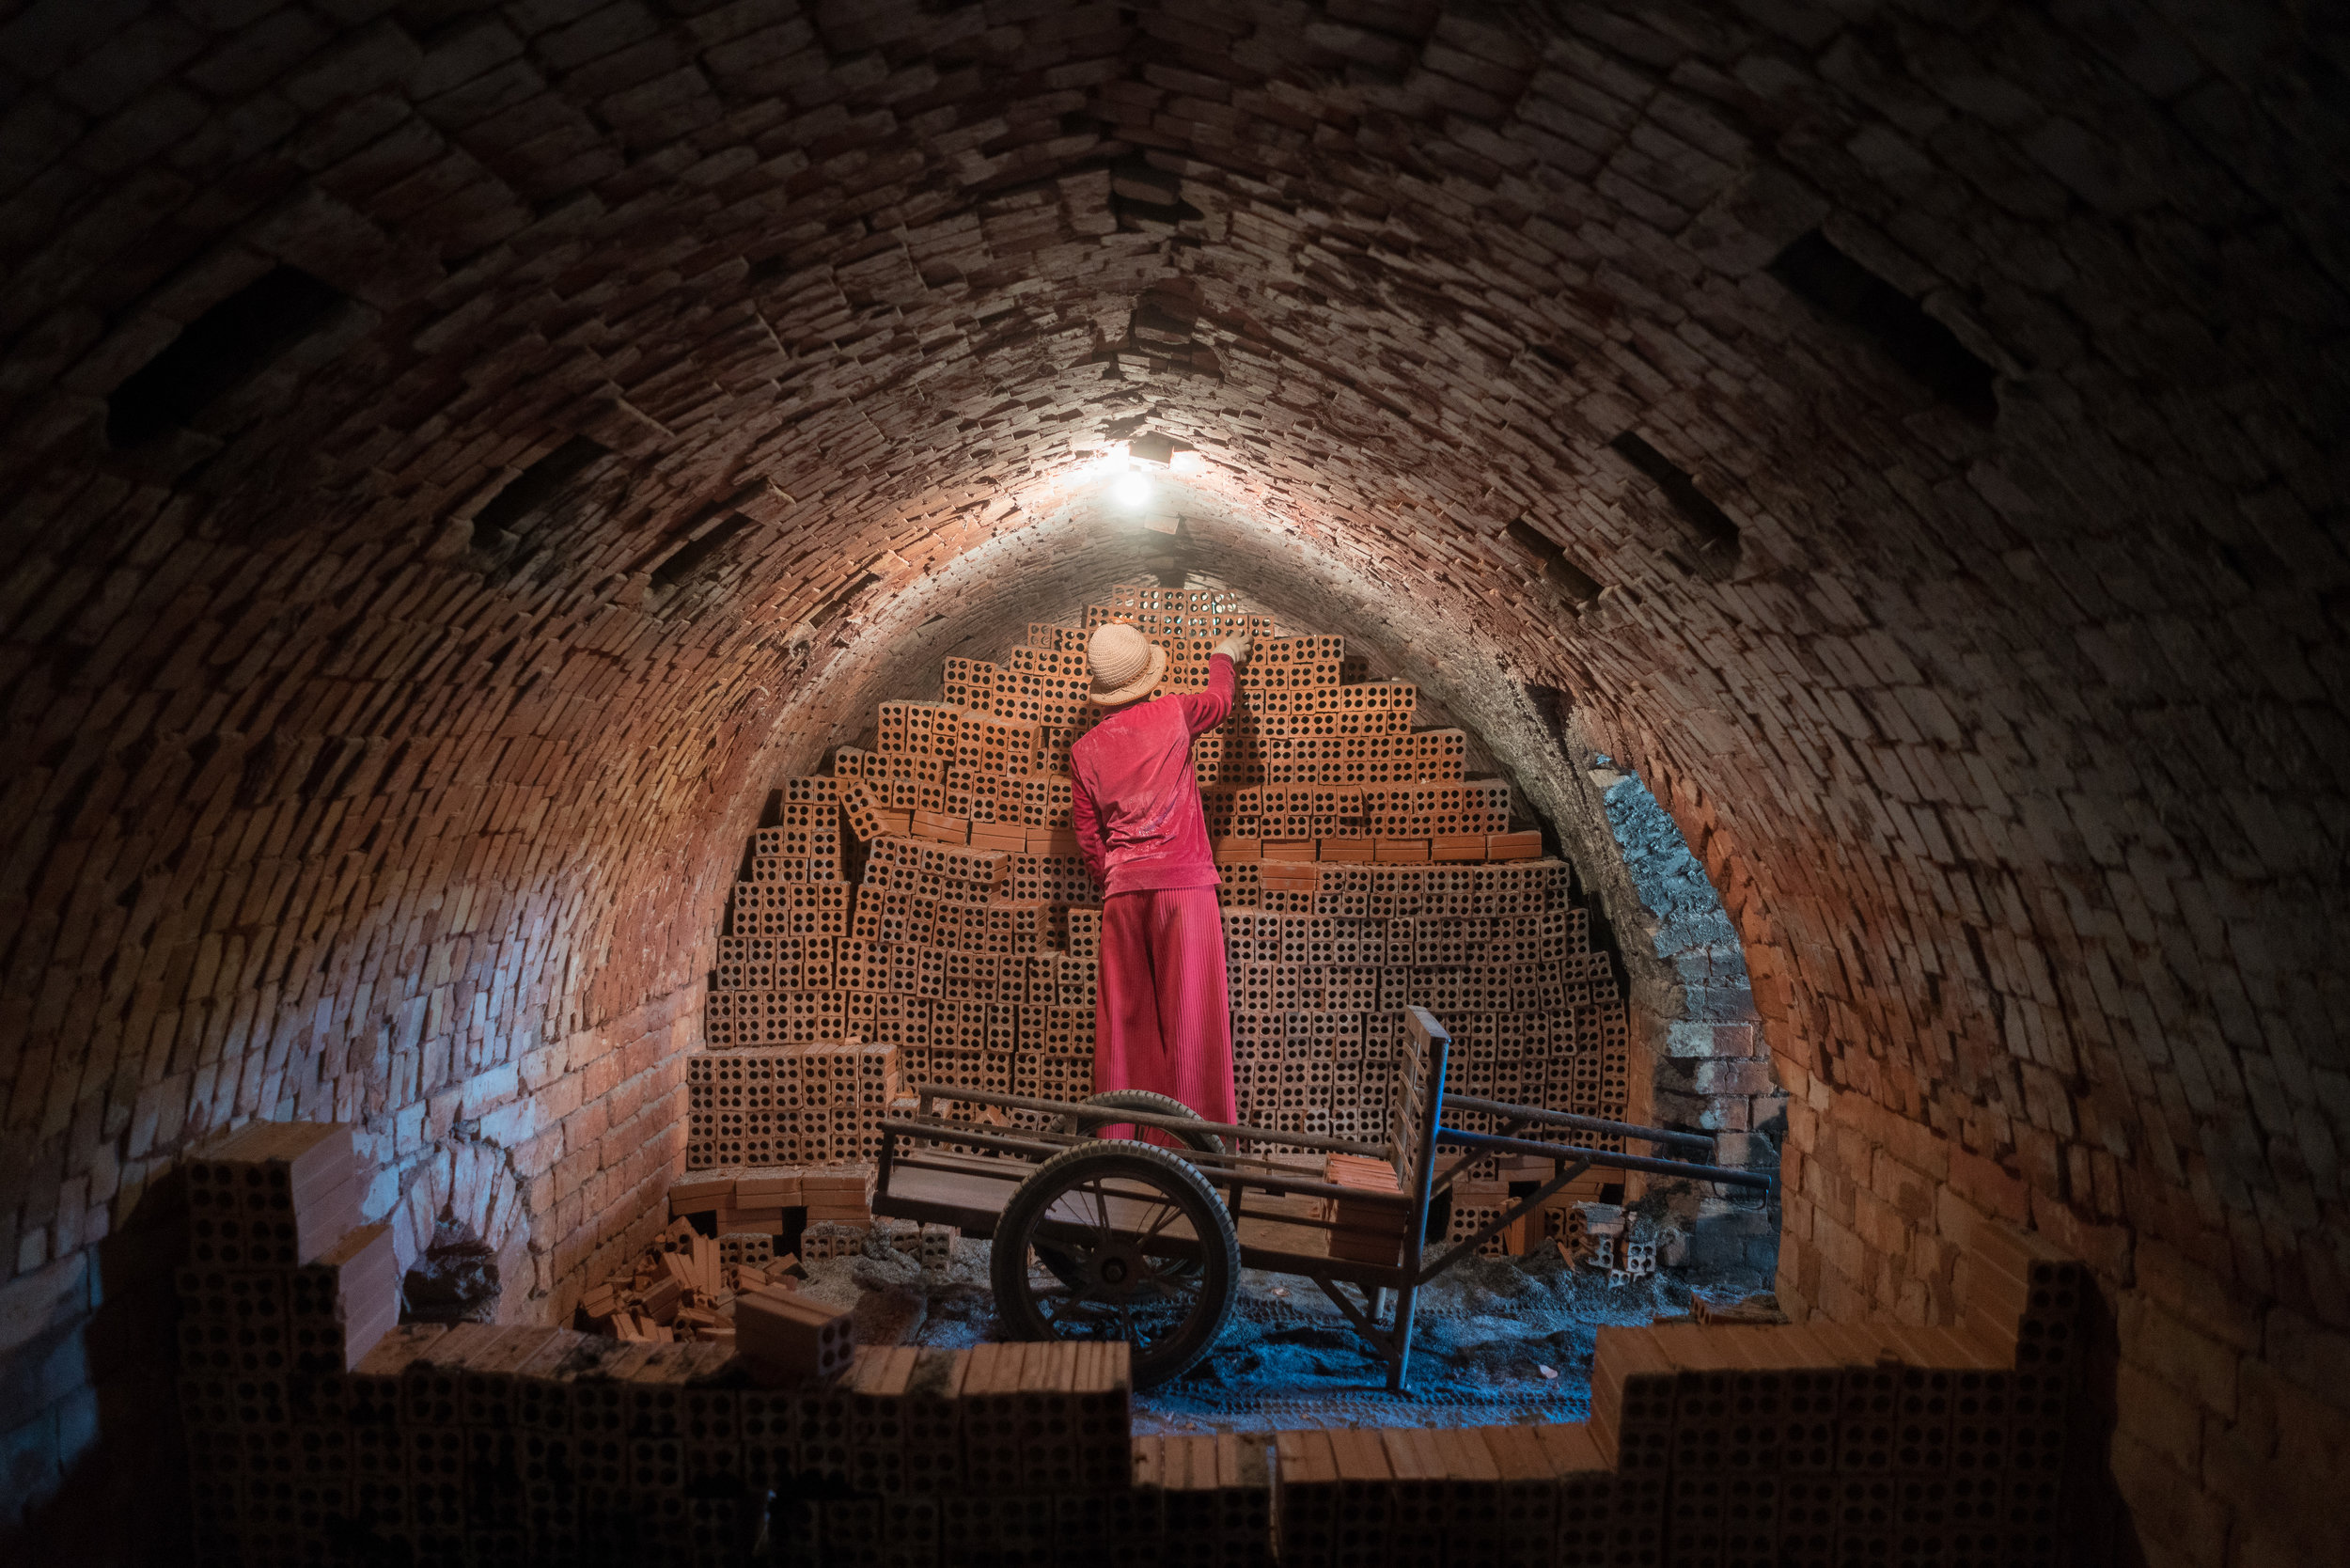 Stacking of a brick-kiln in Cambodia by  Thomas Cristofoletti  for the Blood Bricks project